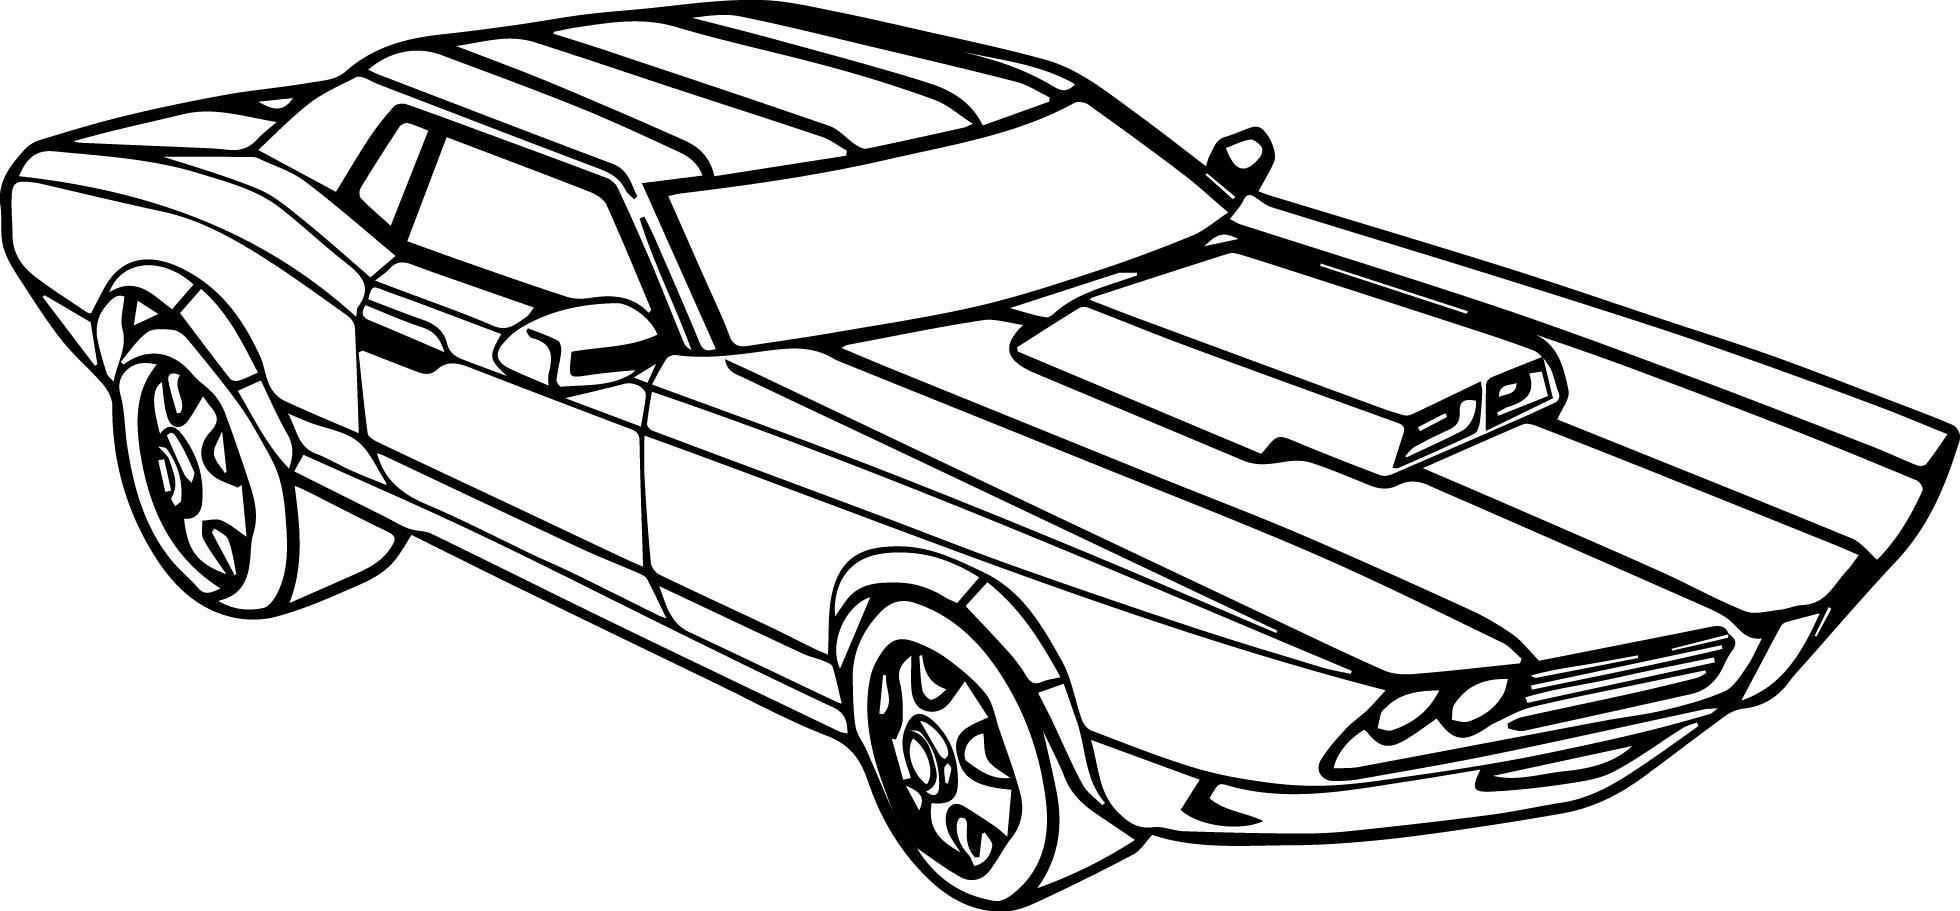 38 Racecar Coloring Pages Pdf in 2020 | Cars coloring ...